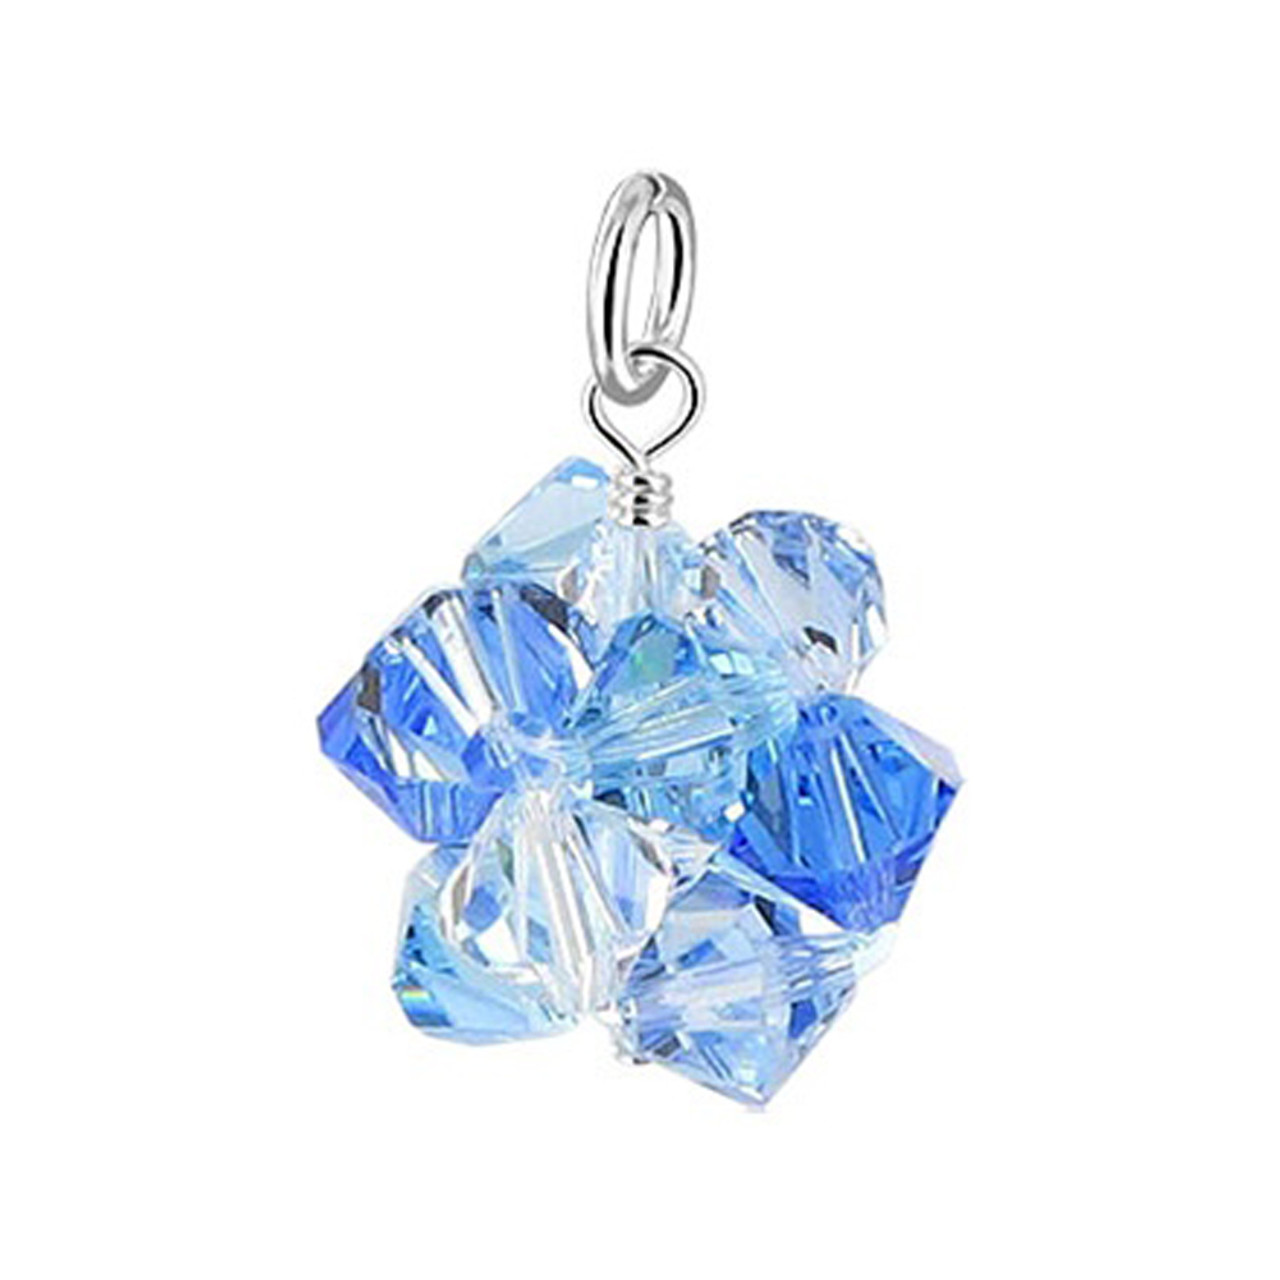 Blue & Clear Bicone Ball Shape Crystal 925 Silver Pendant